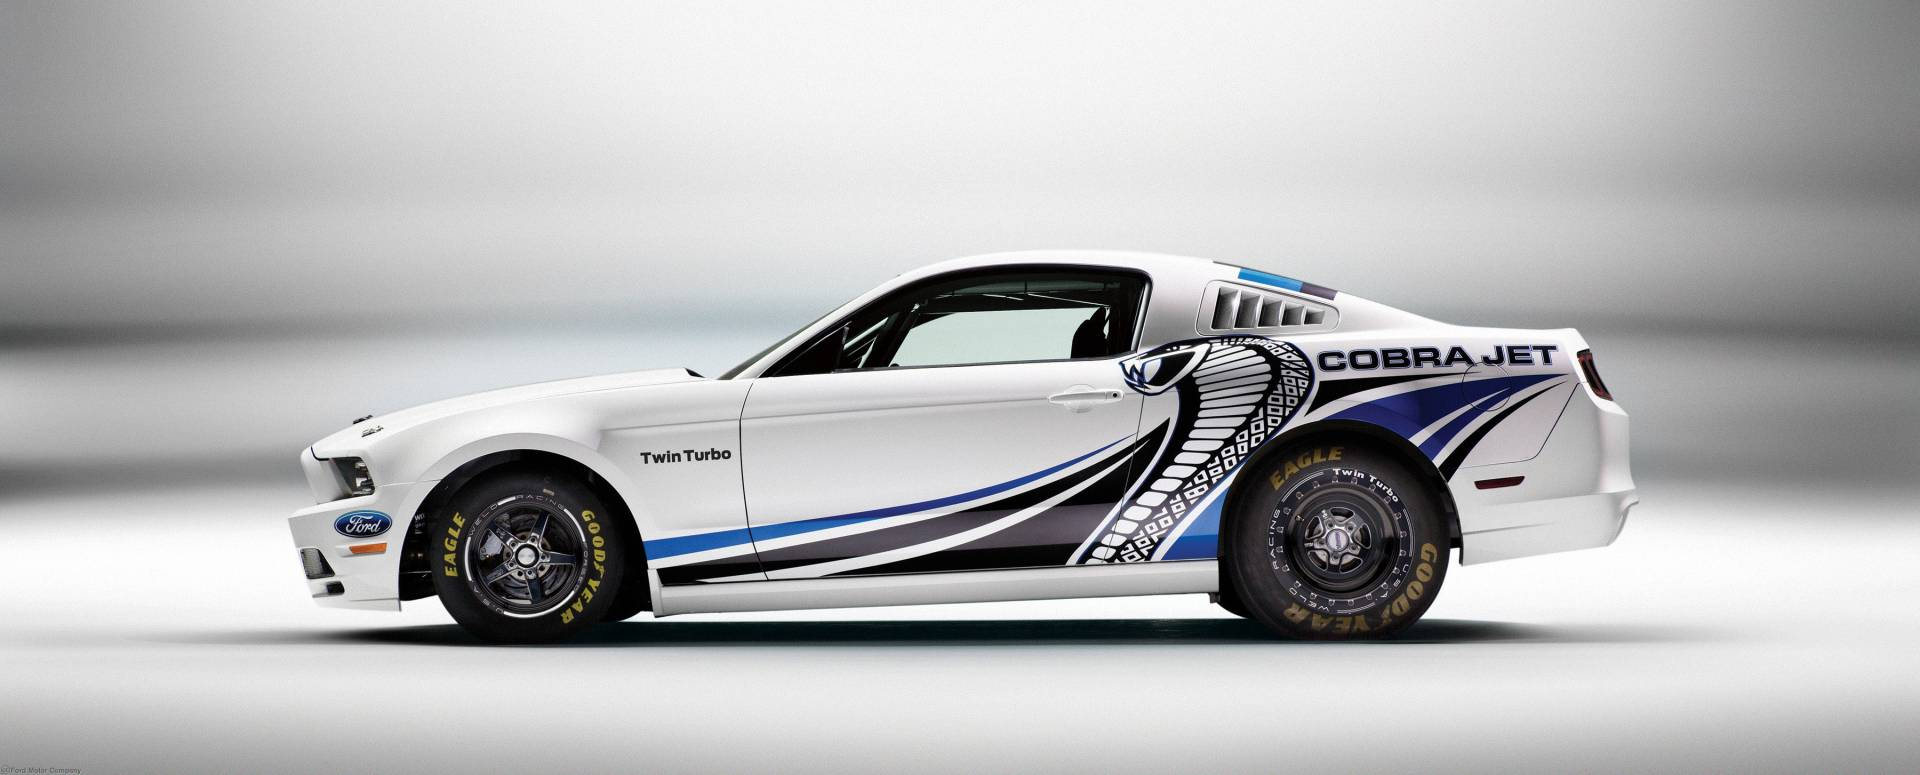 2013 Ford Mustang Cobra Jet Twin Turbo Concept News And